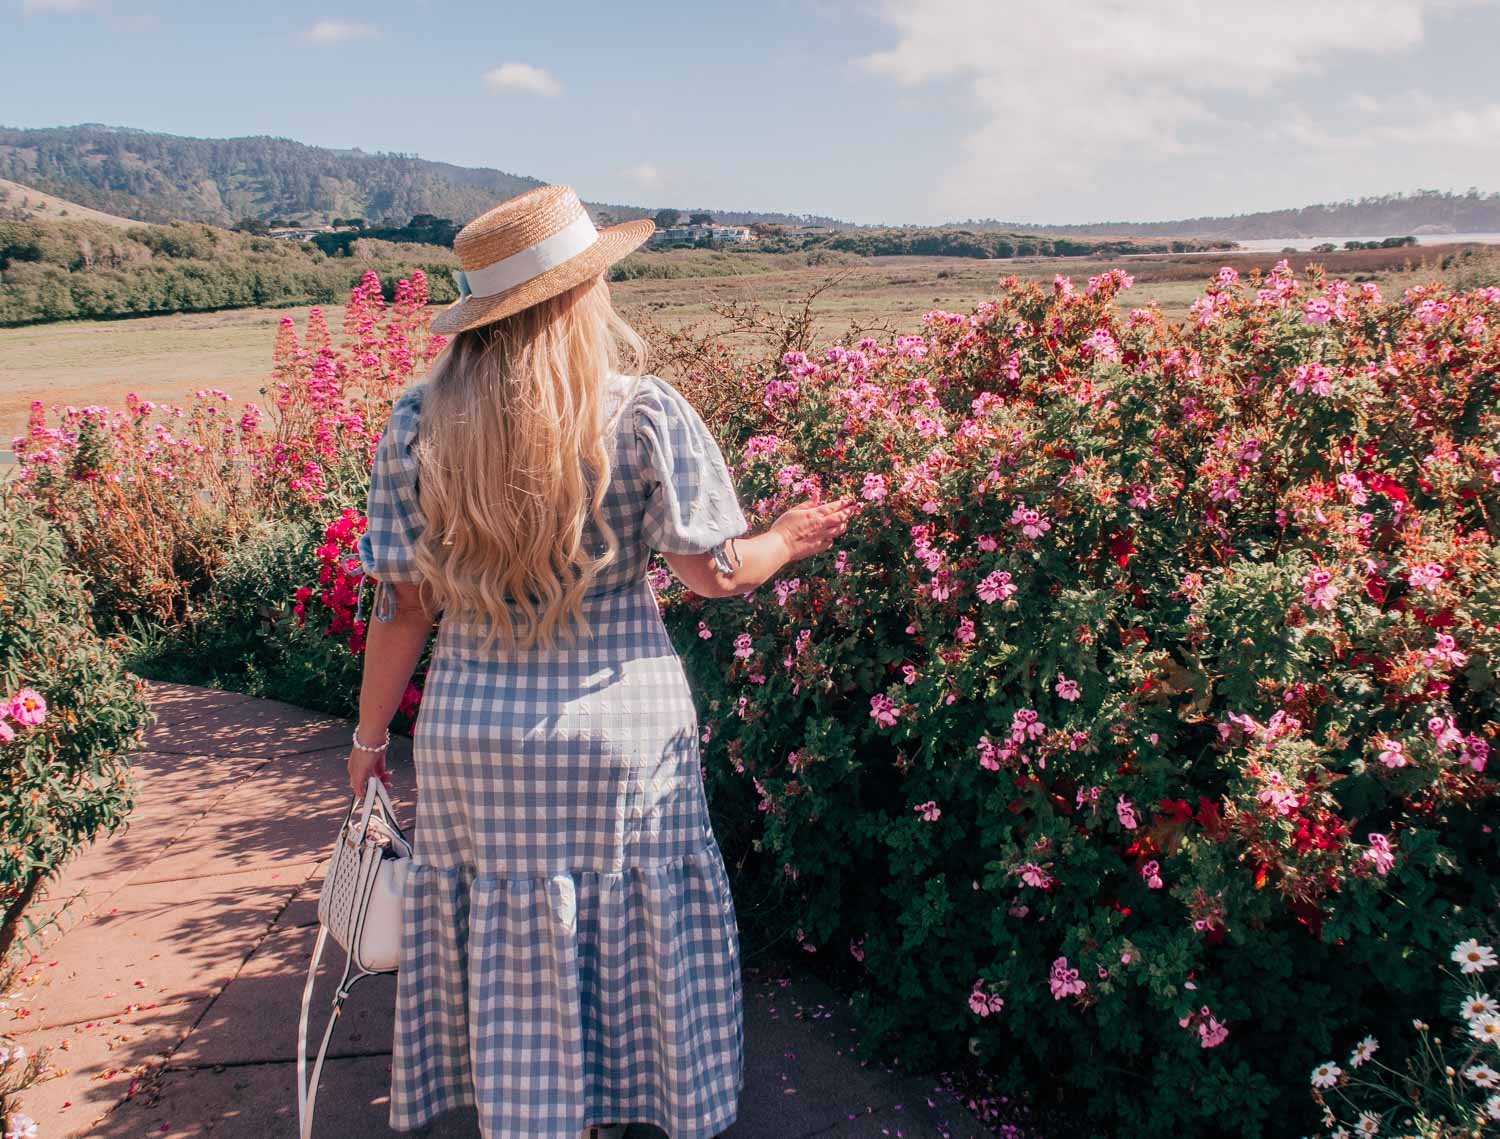 Fashion Blogger Elizabeth Hugen of Lizzie in Lace shares what to do in Carmel by-the-sea and includes her favorite feminine travel outfit ideas like this River Island blue Gingham Dress